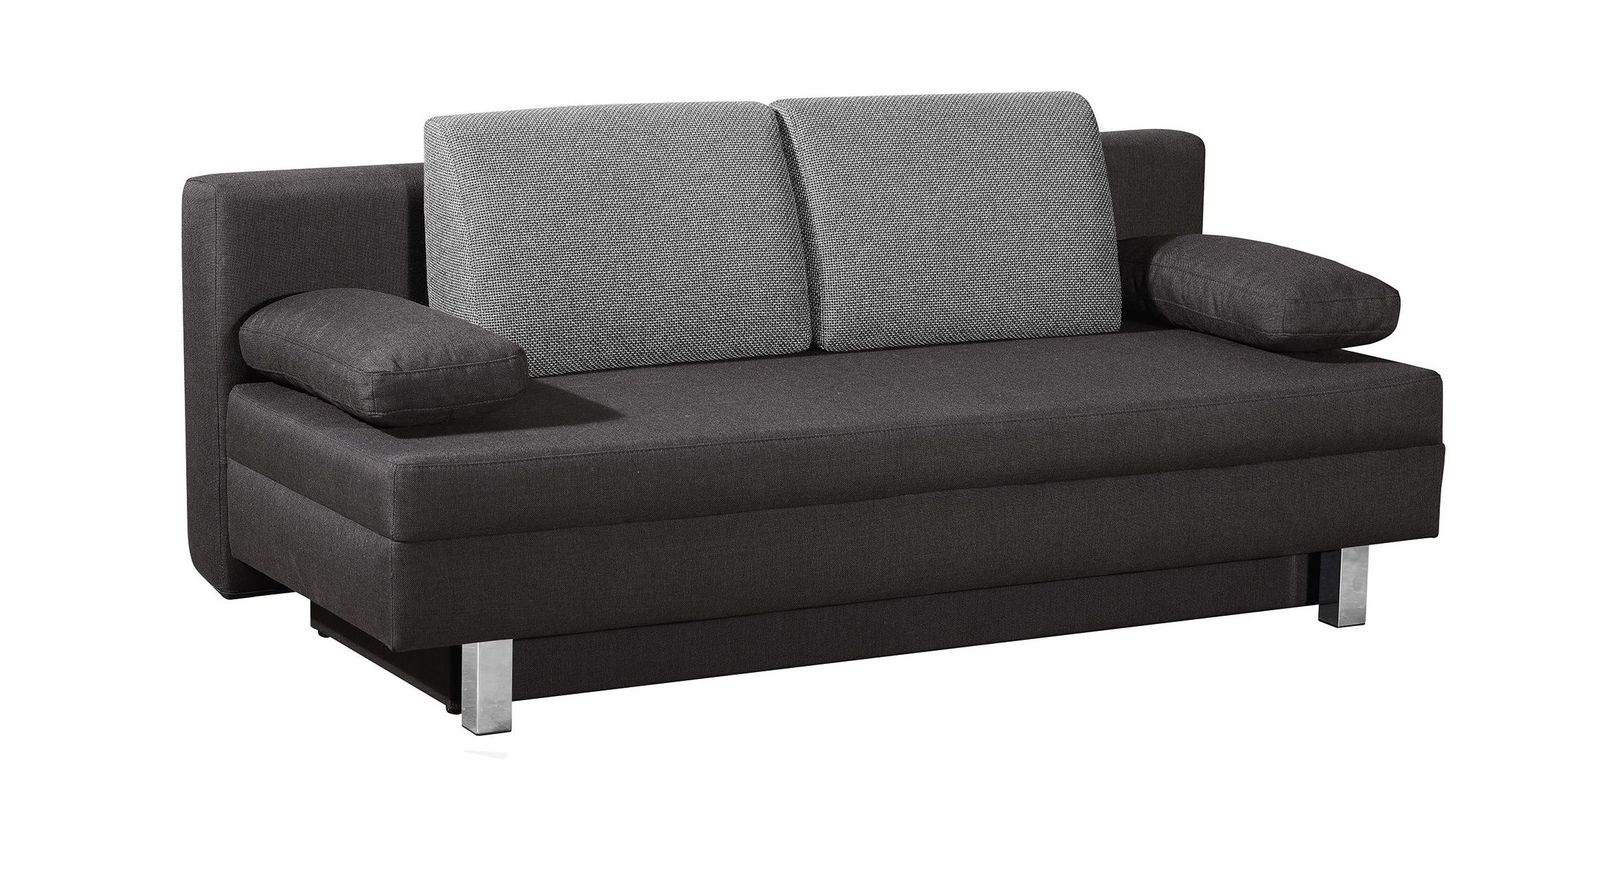 schlafsofa in 150x200 cm mit bettkasten und hubmatik hill brook. Black Bedroom Furniture Sets. Home Design Ideas